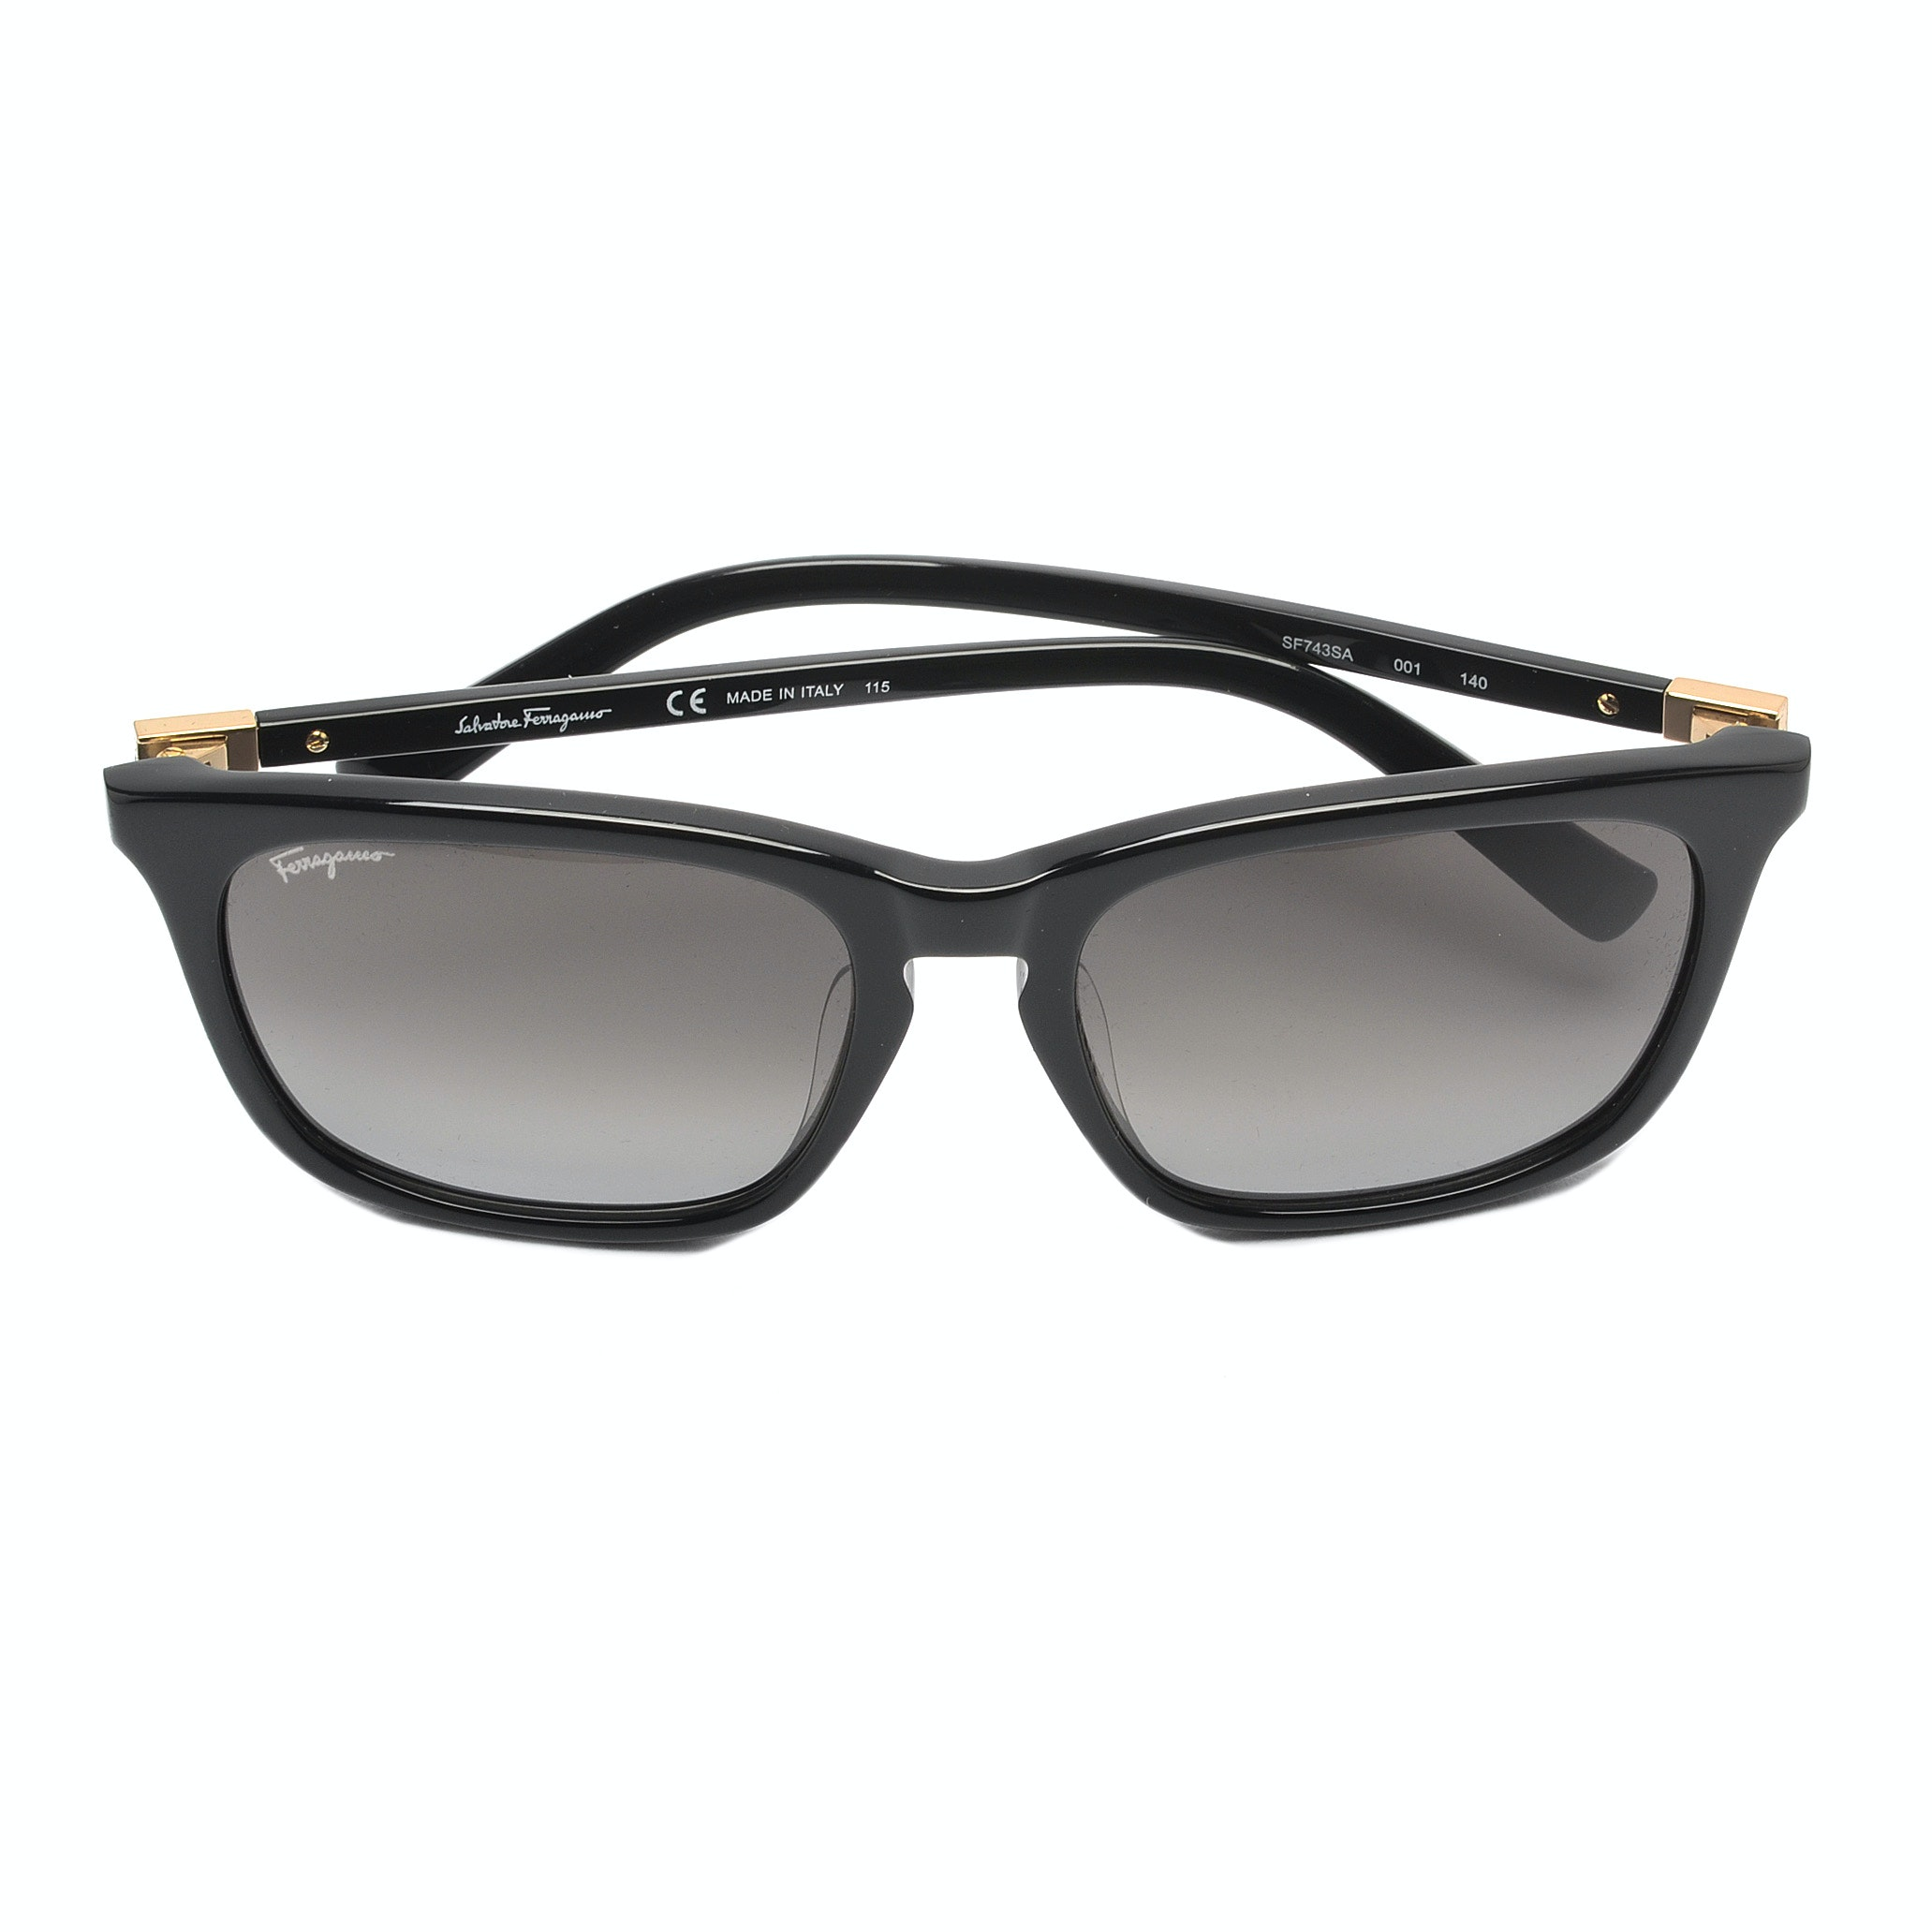 Salvatore Ferragamo SF743SA Sunglasses